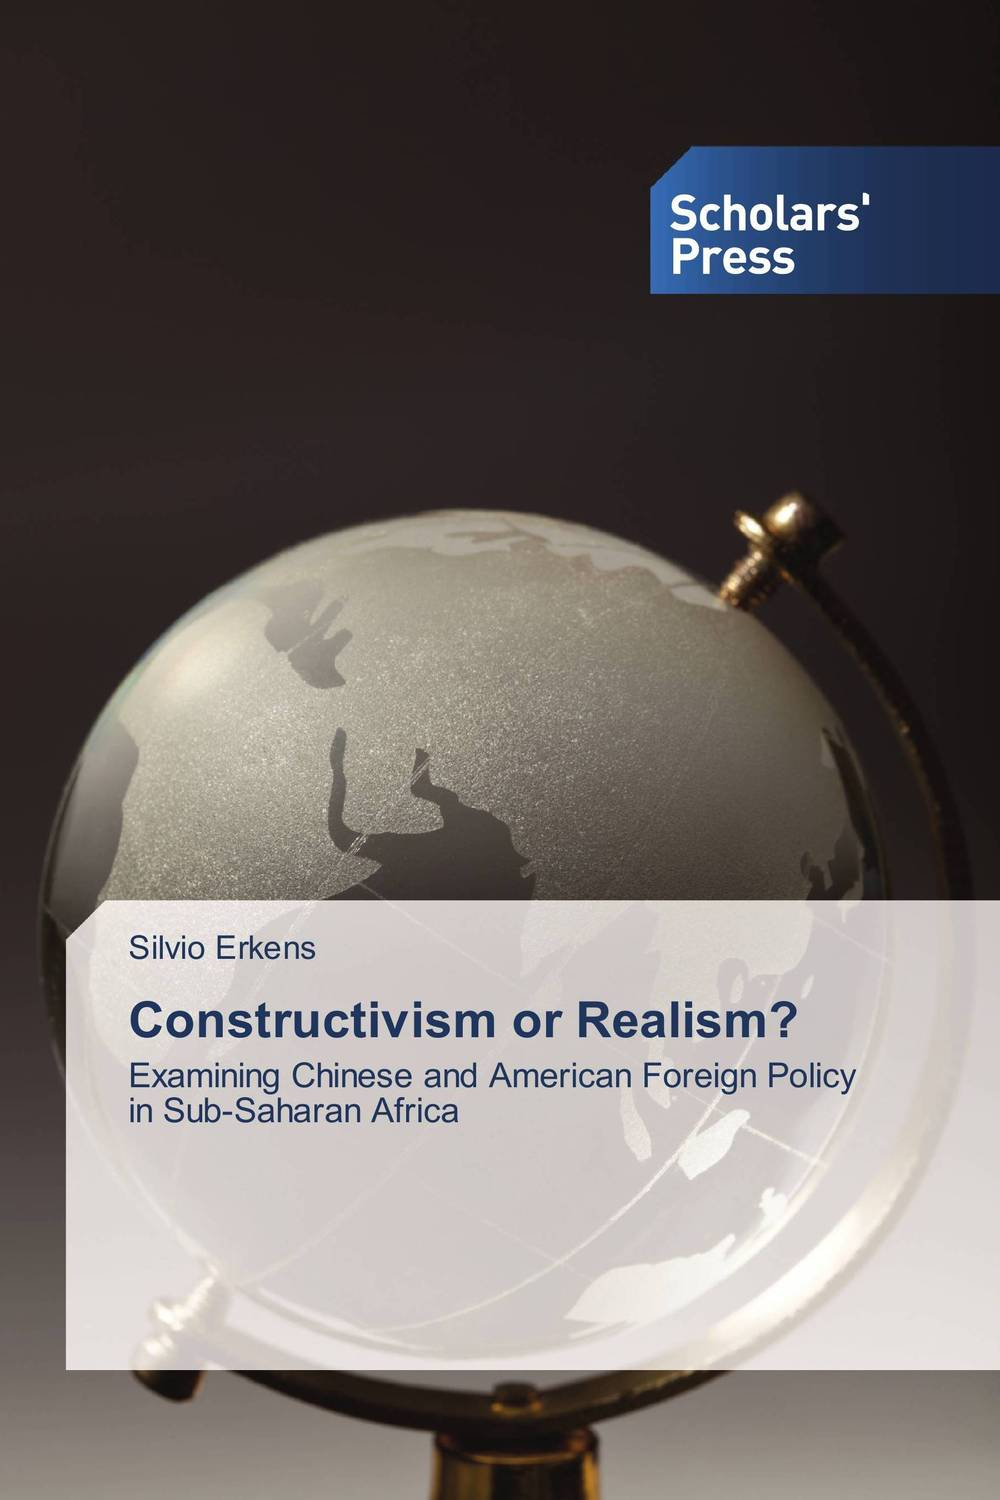 Constructivism or Realism? foreign policy as a means for advancing human rights